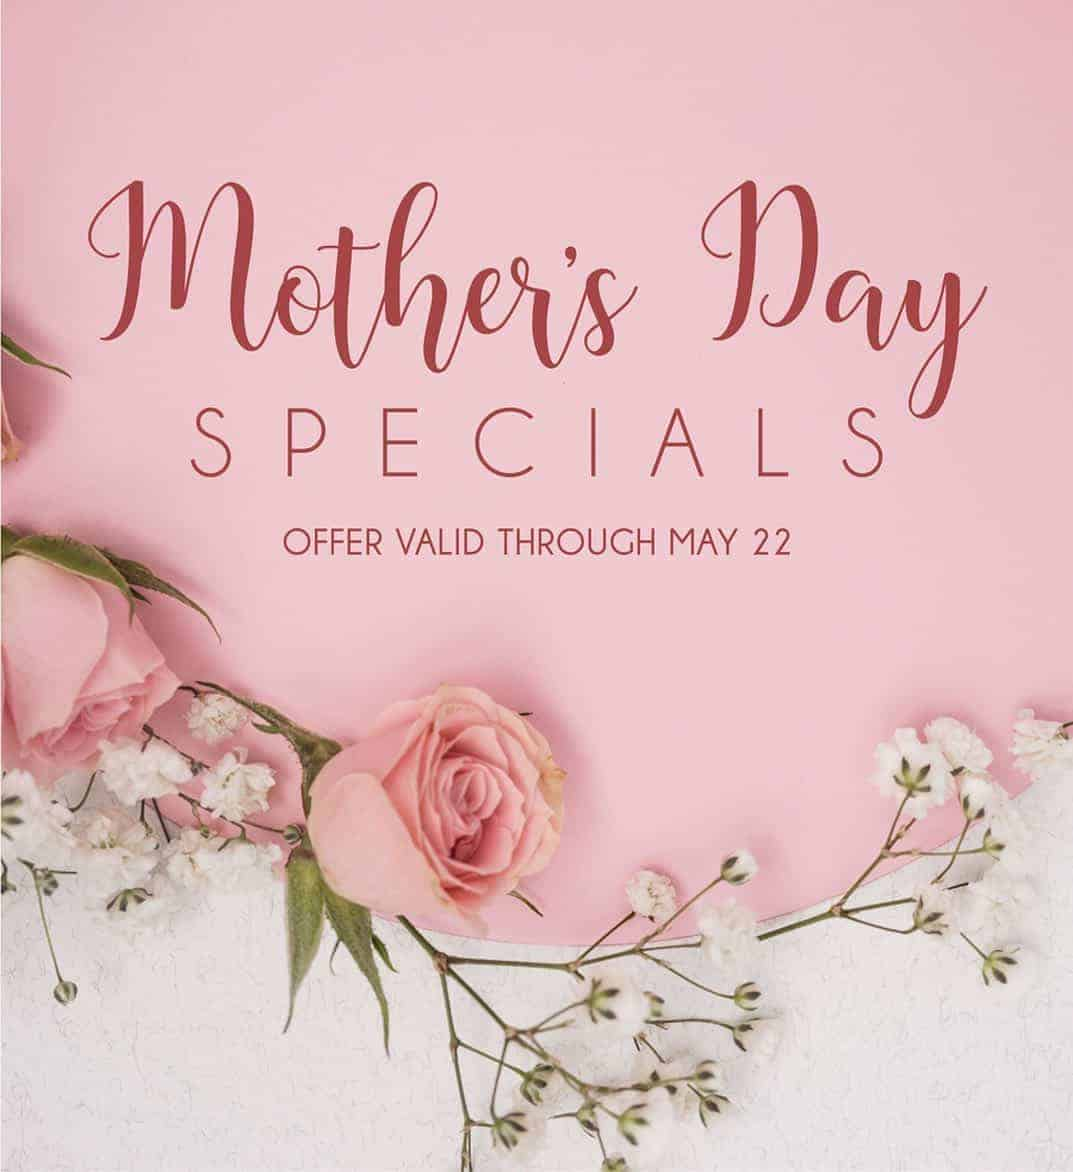 NG Aesthetics - Mother's Day Specials